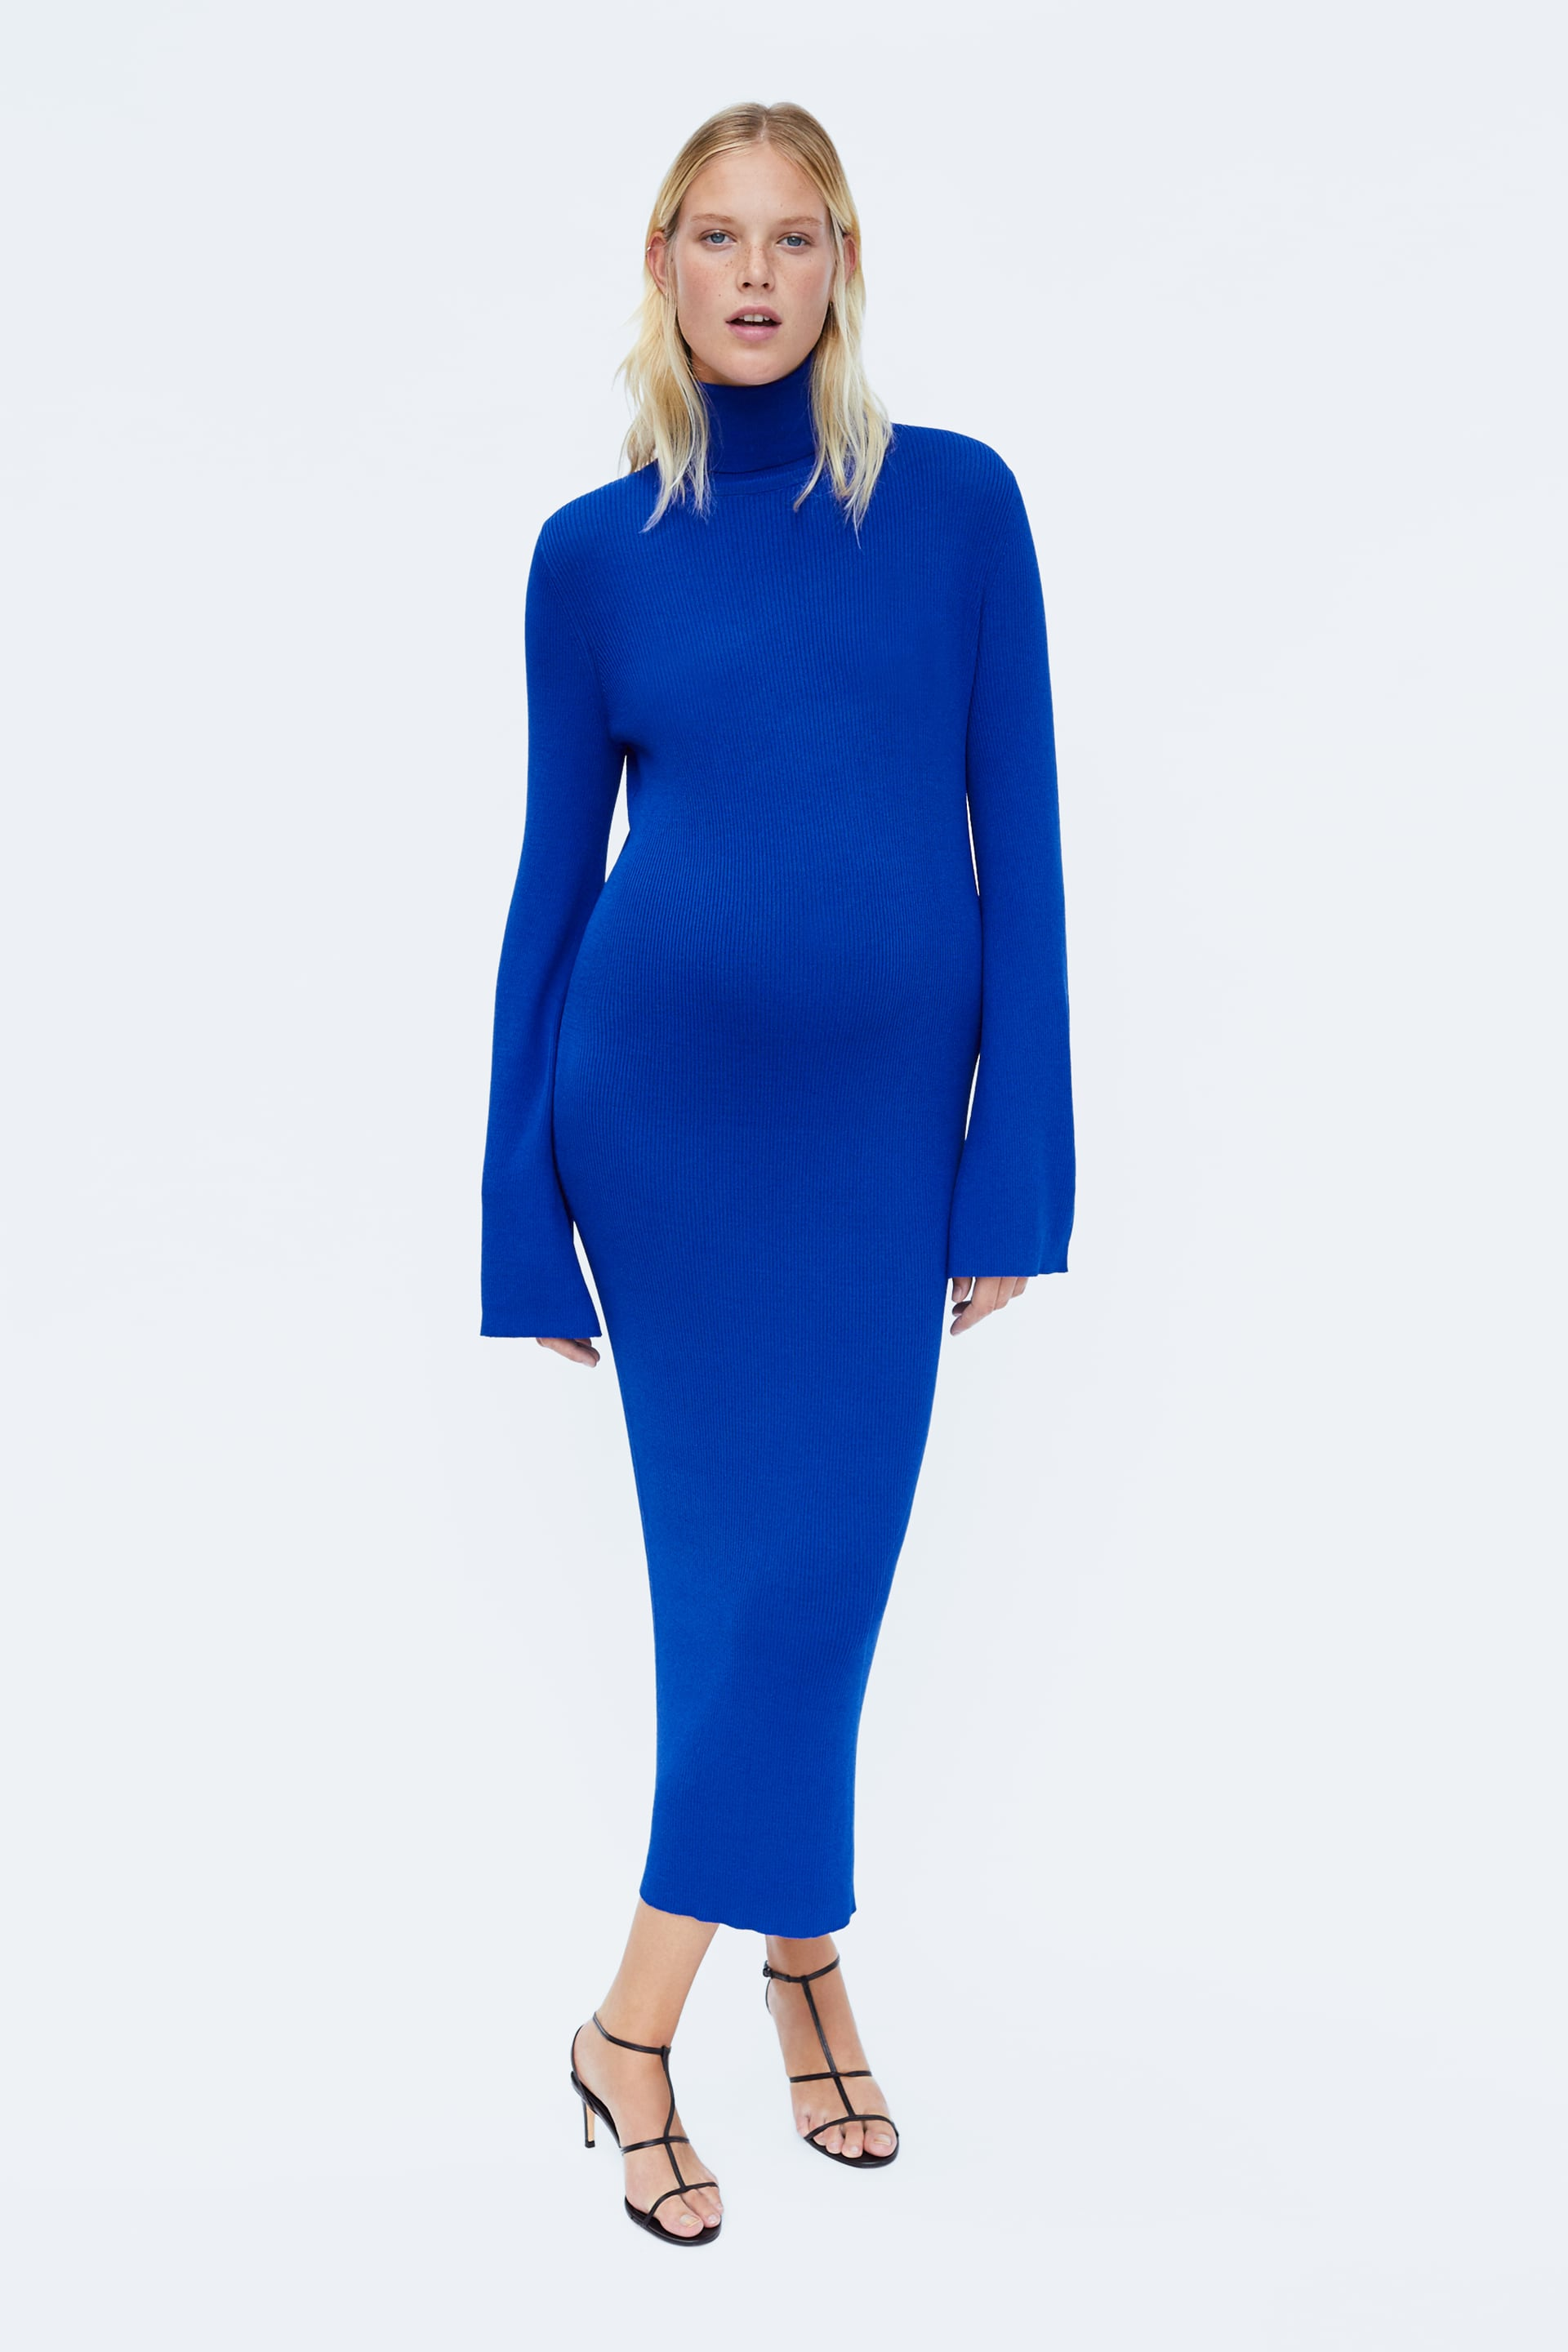 ac73329dbba New Zara Maternity Clothing Line